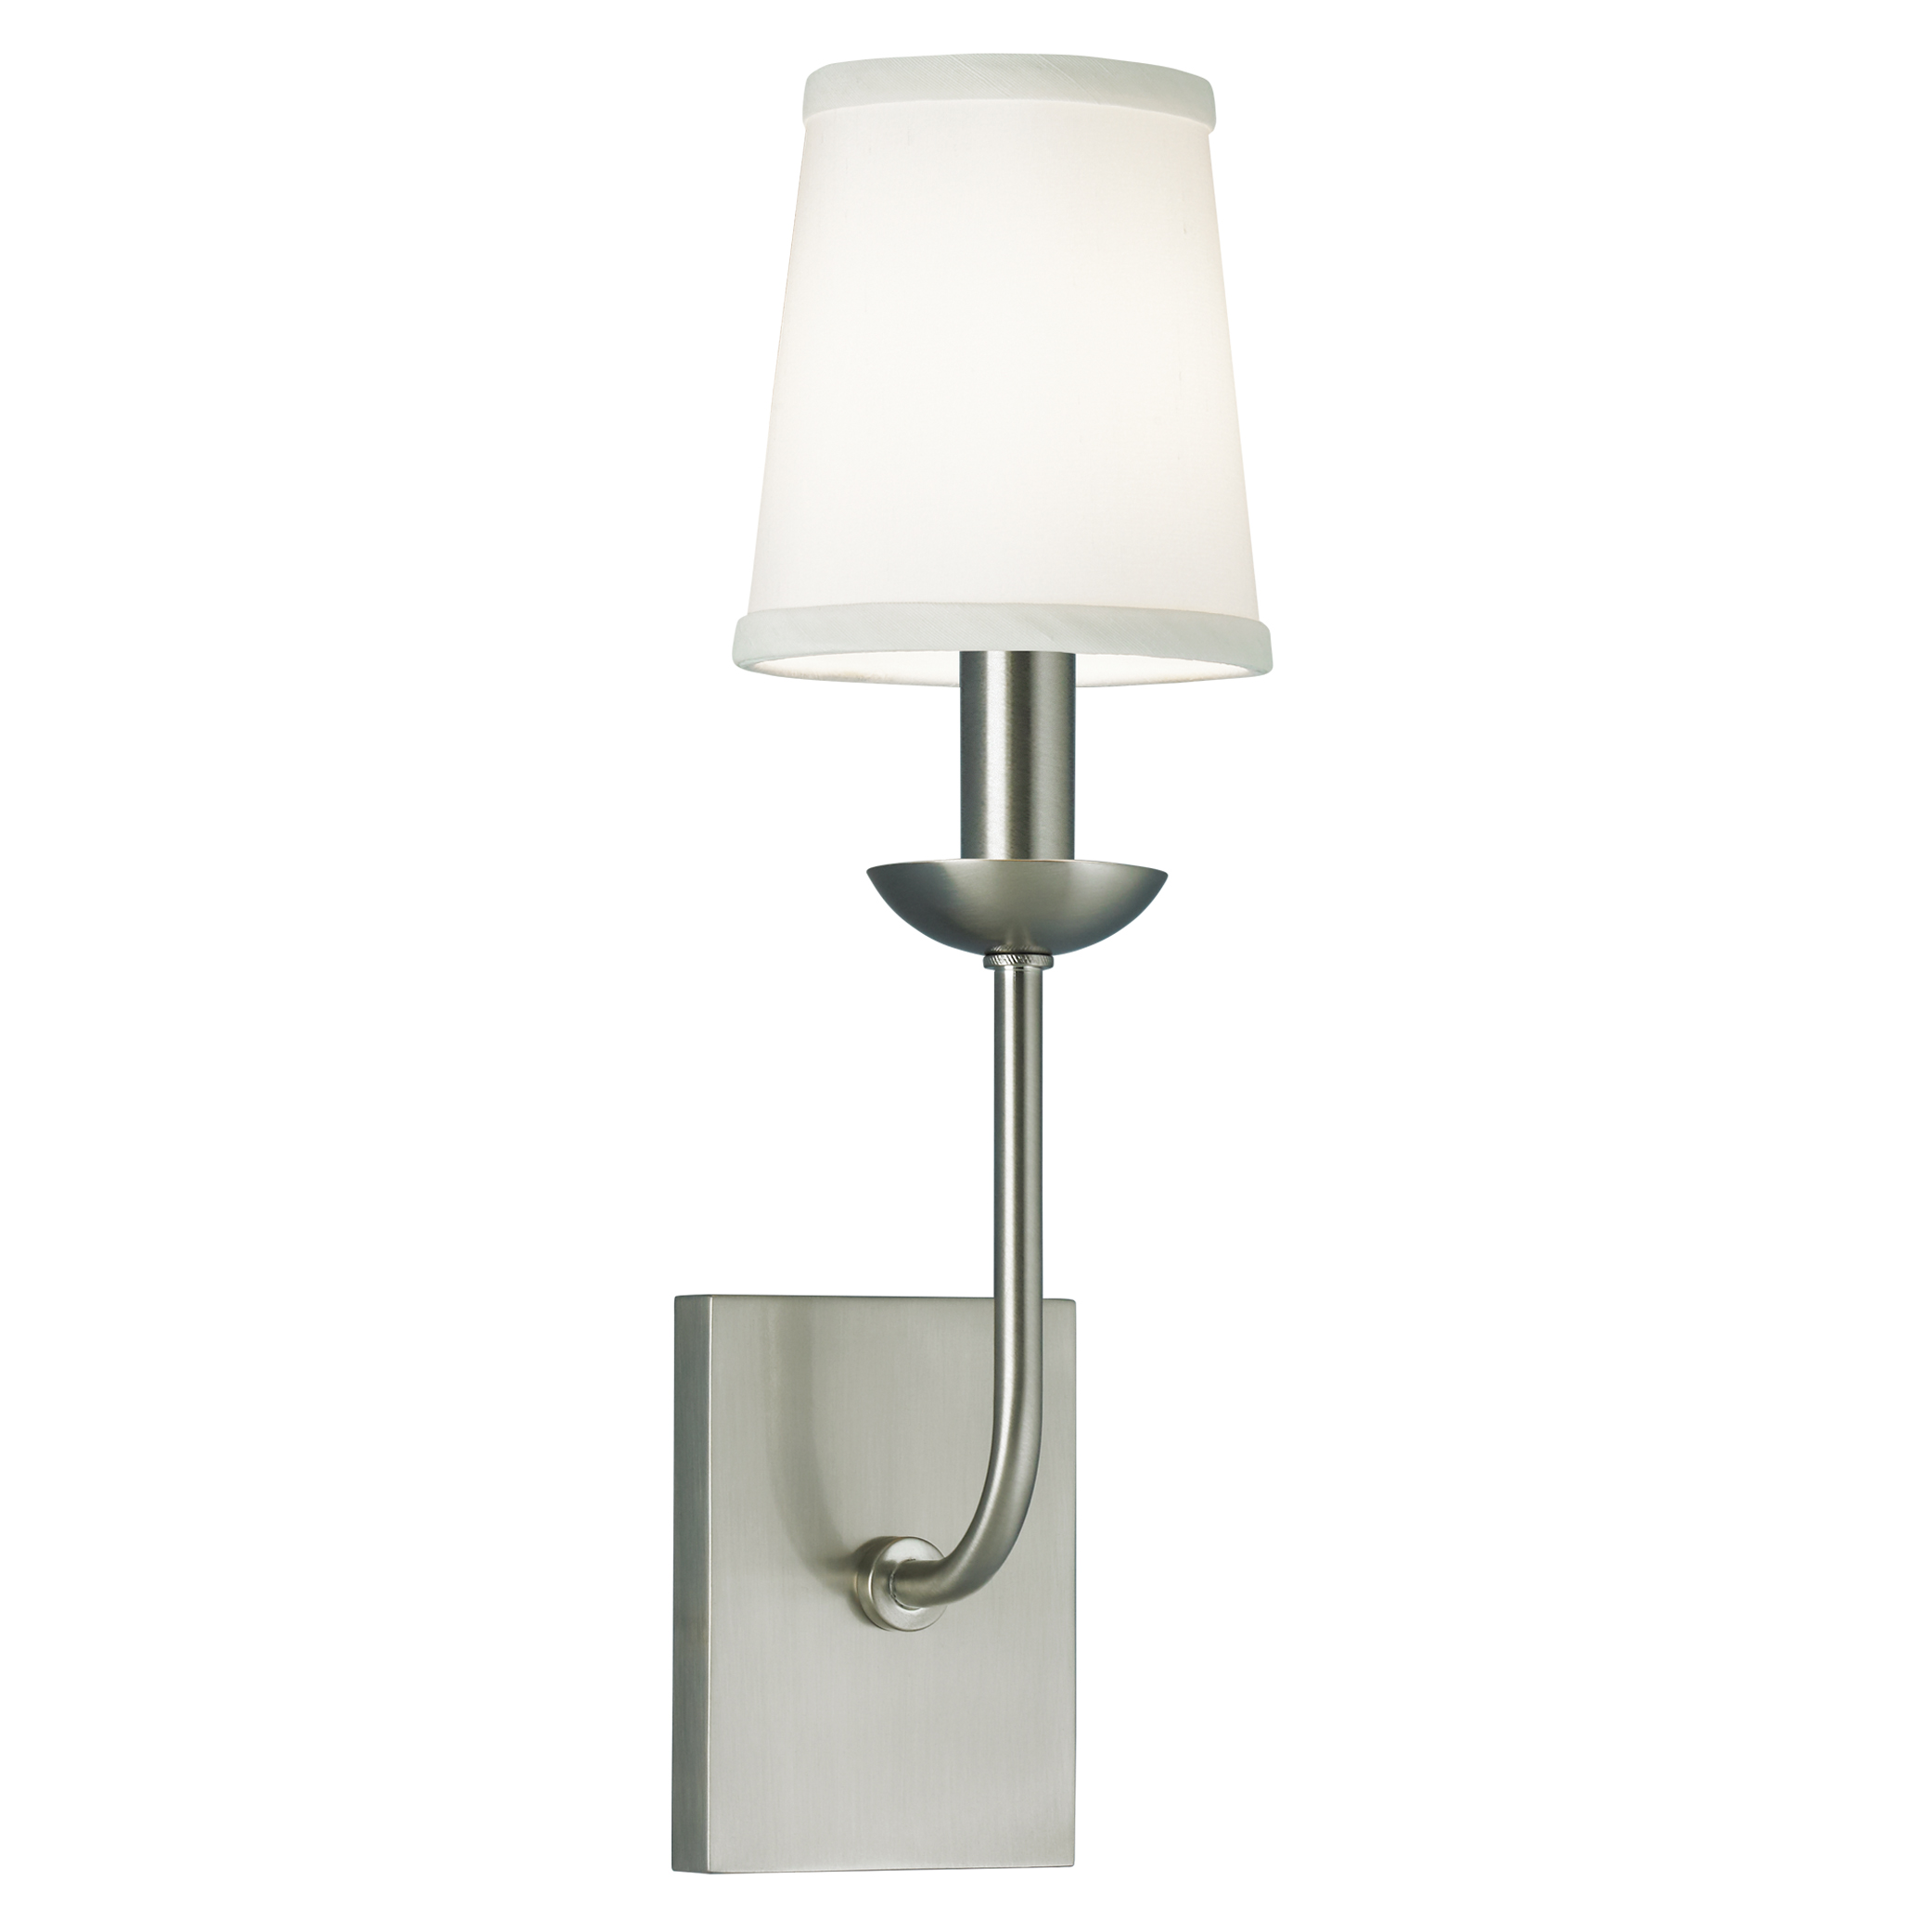 Circa Wall Sconce By Norwell Lighting 8141 Bn Ws